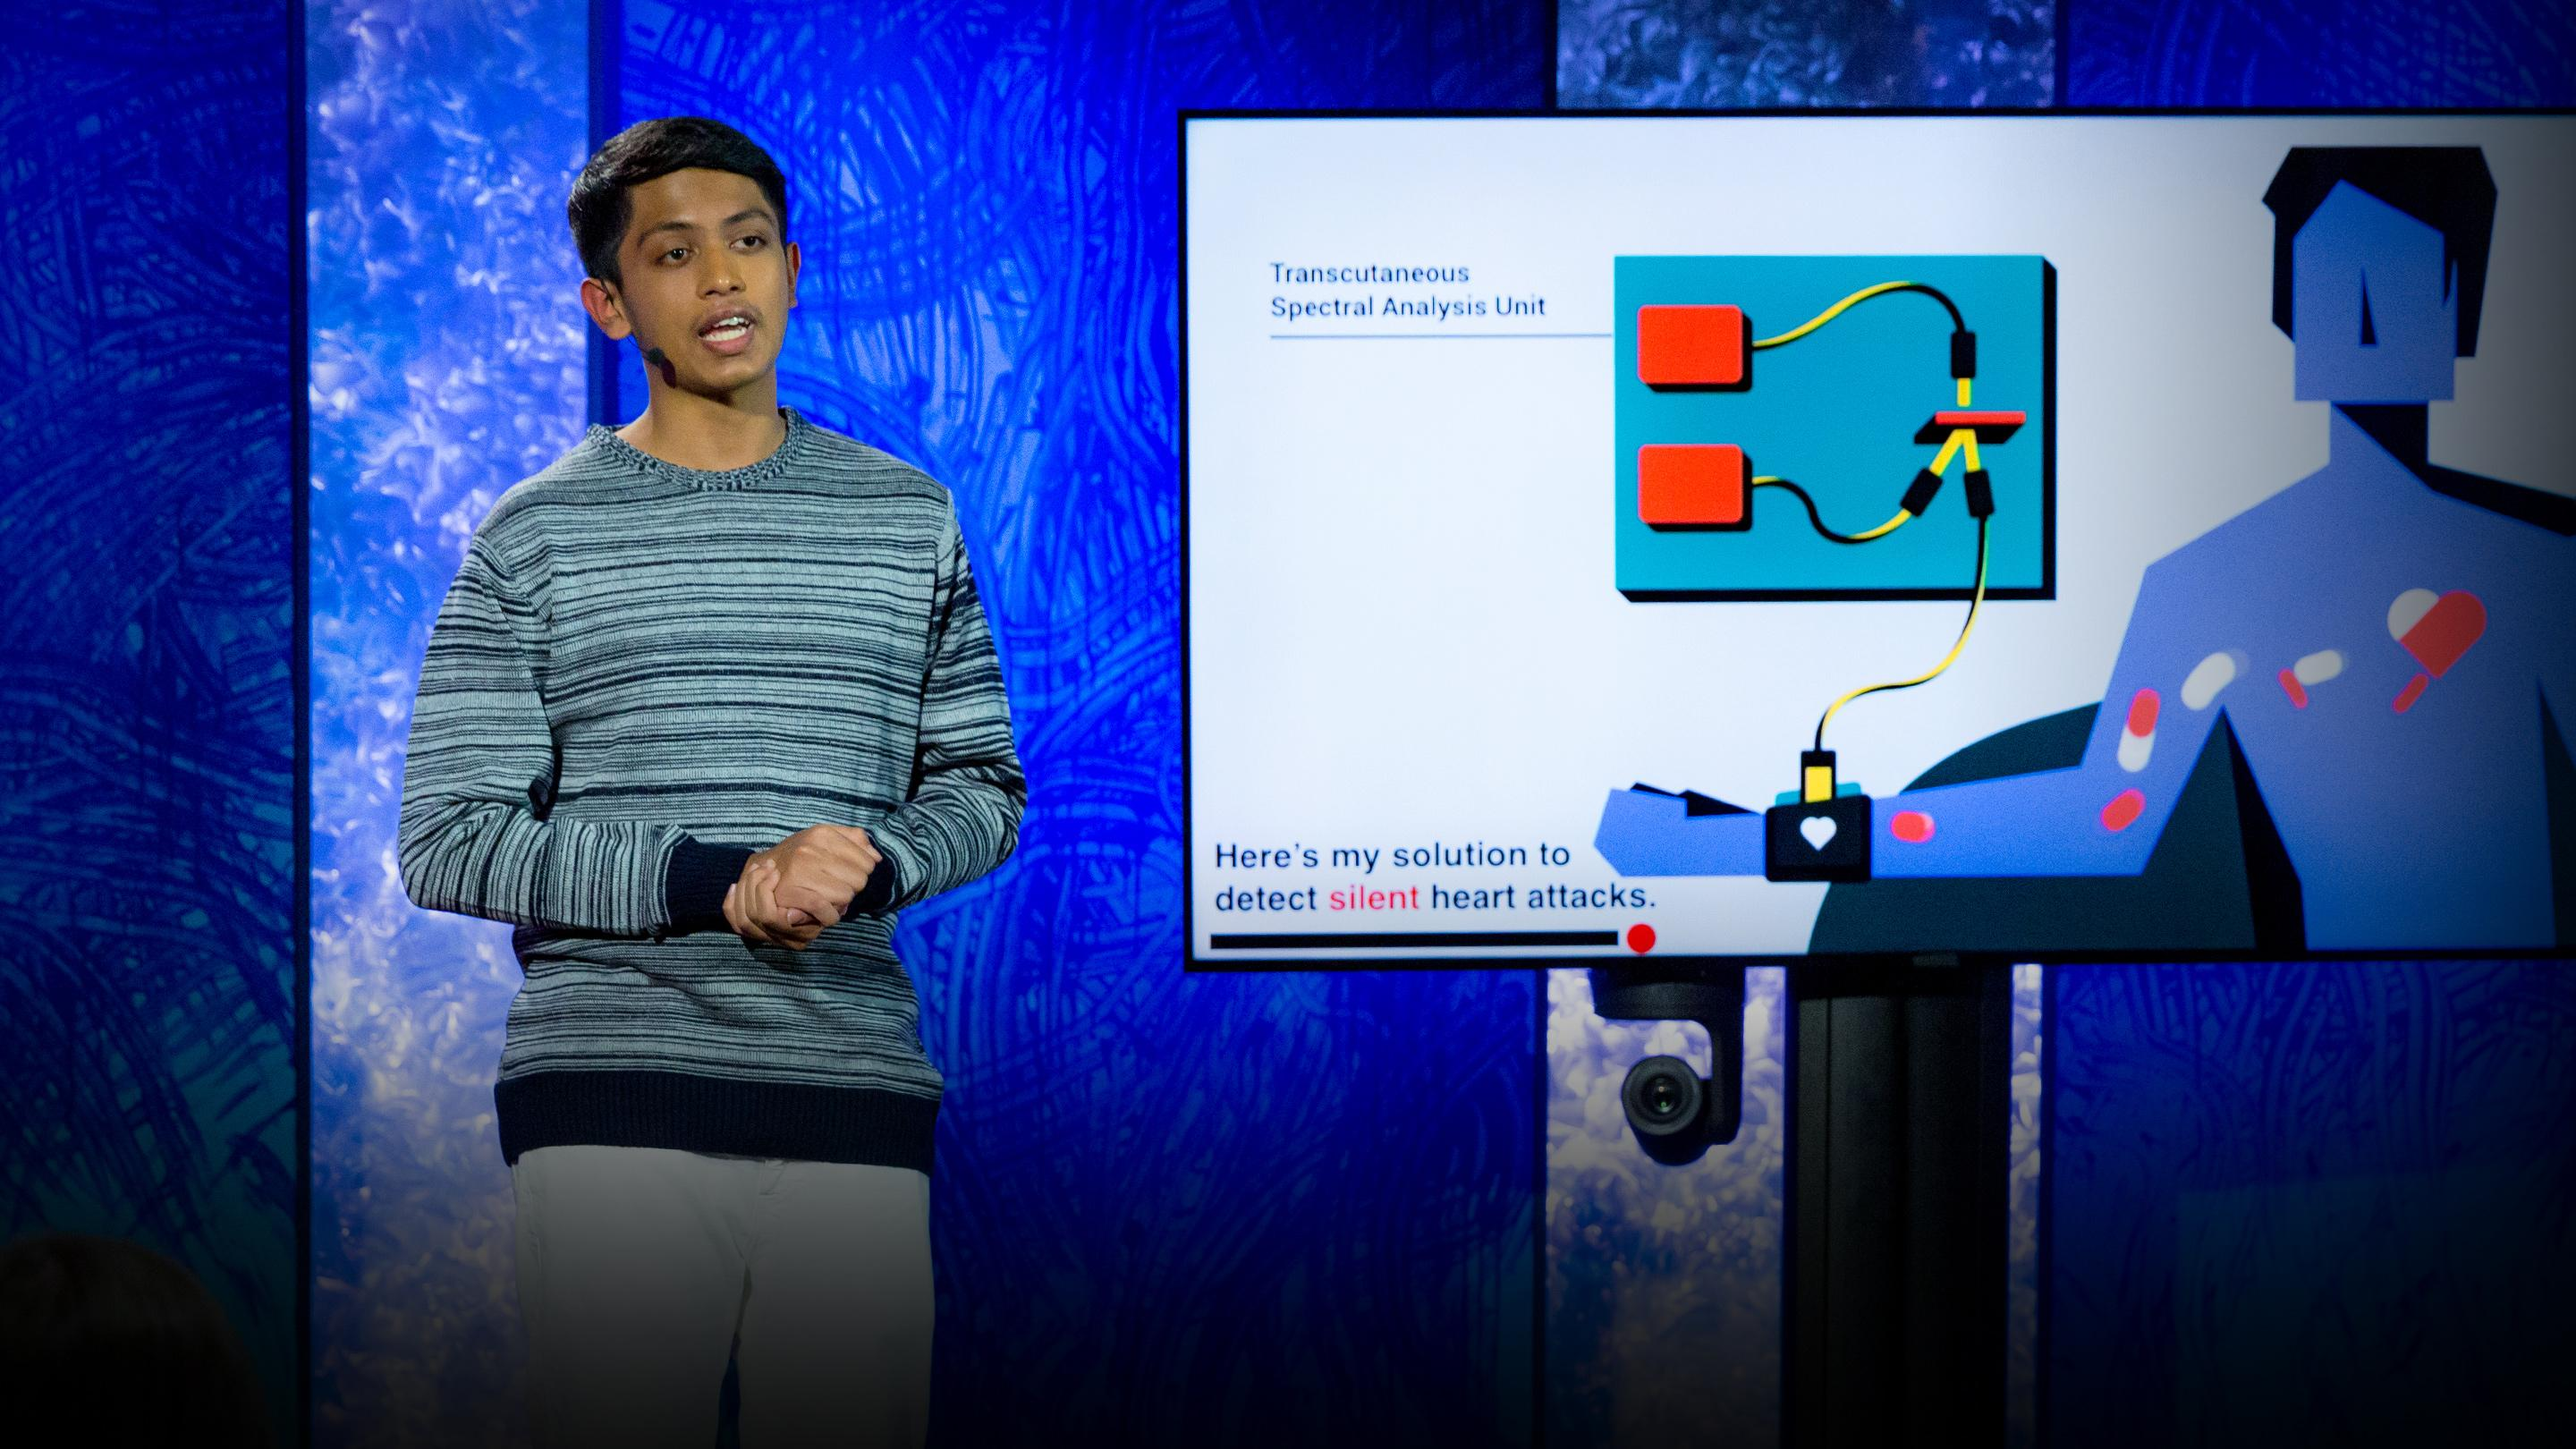 A life-saving device that detects silent heart attacks | Akash Manoj